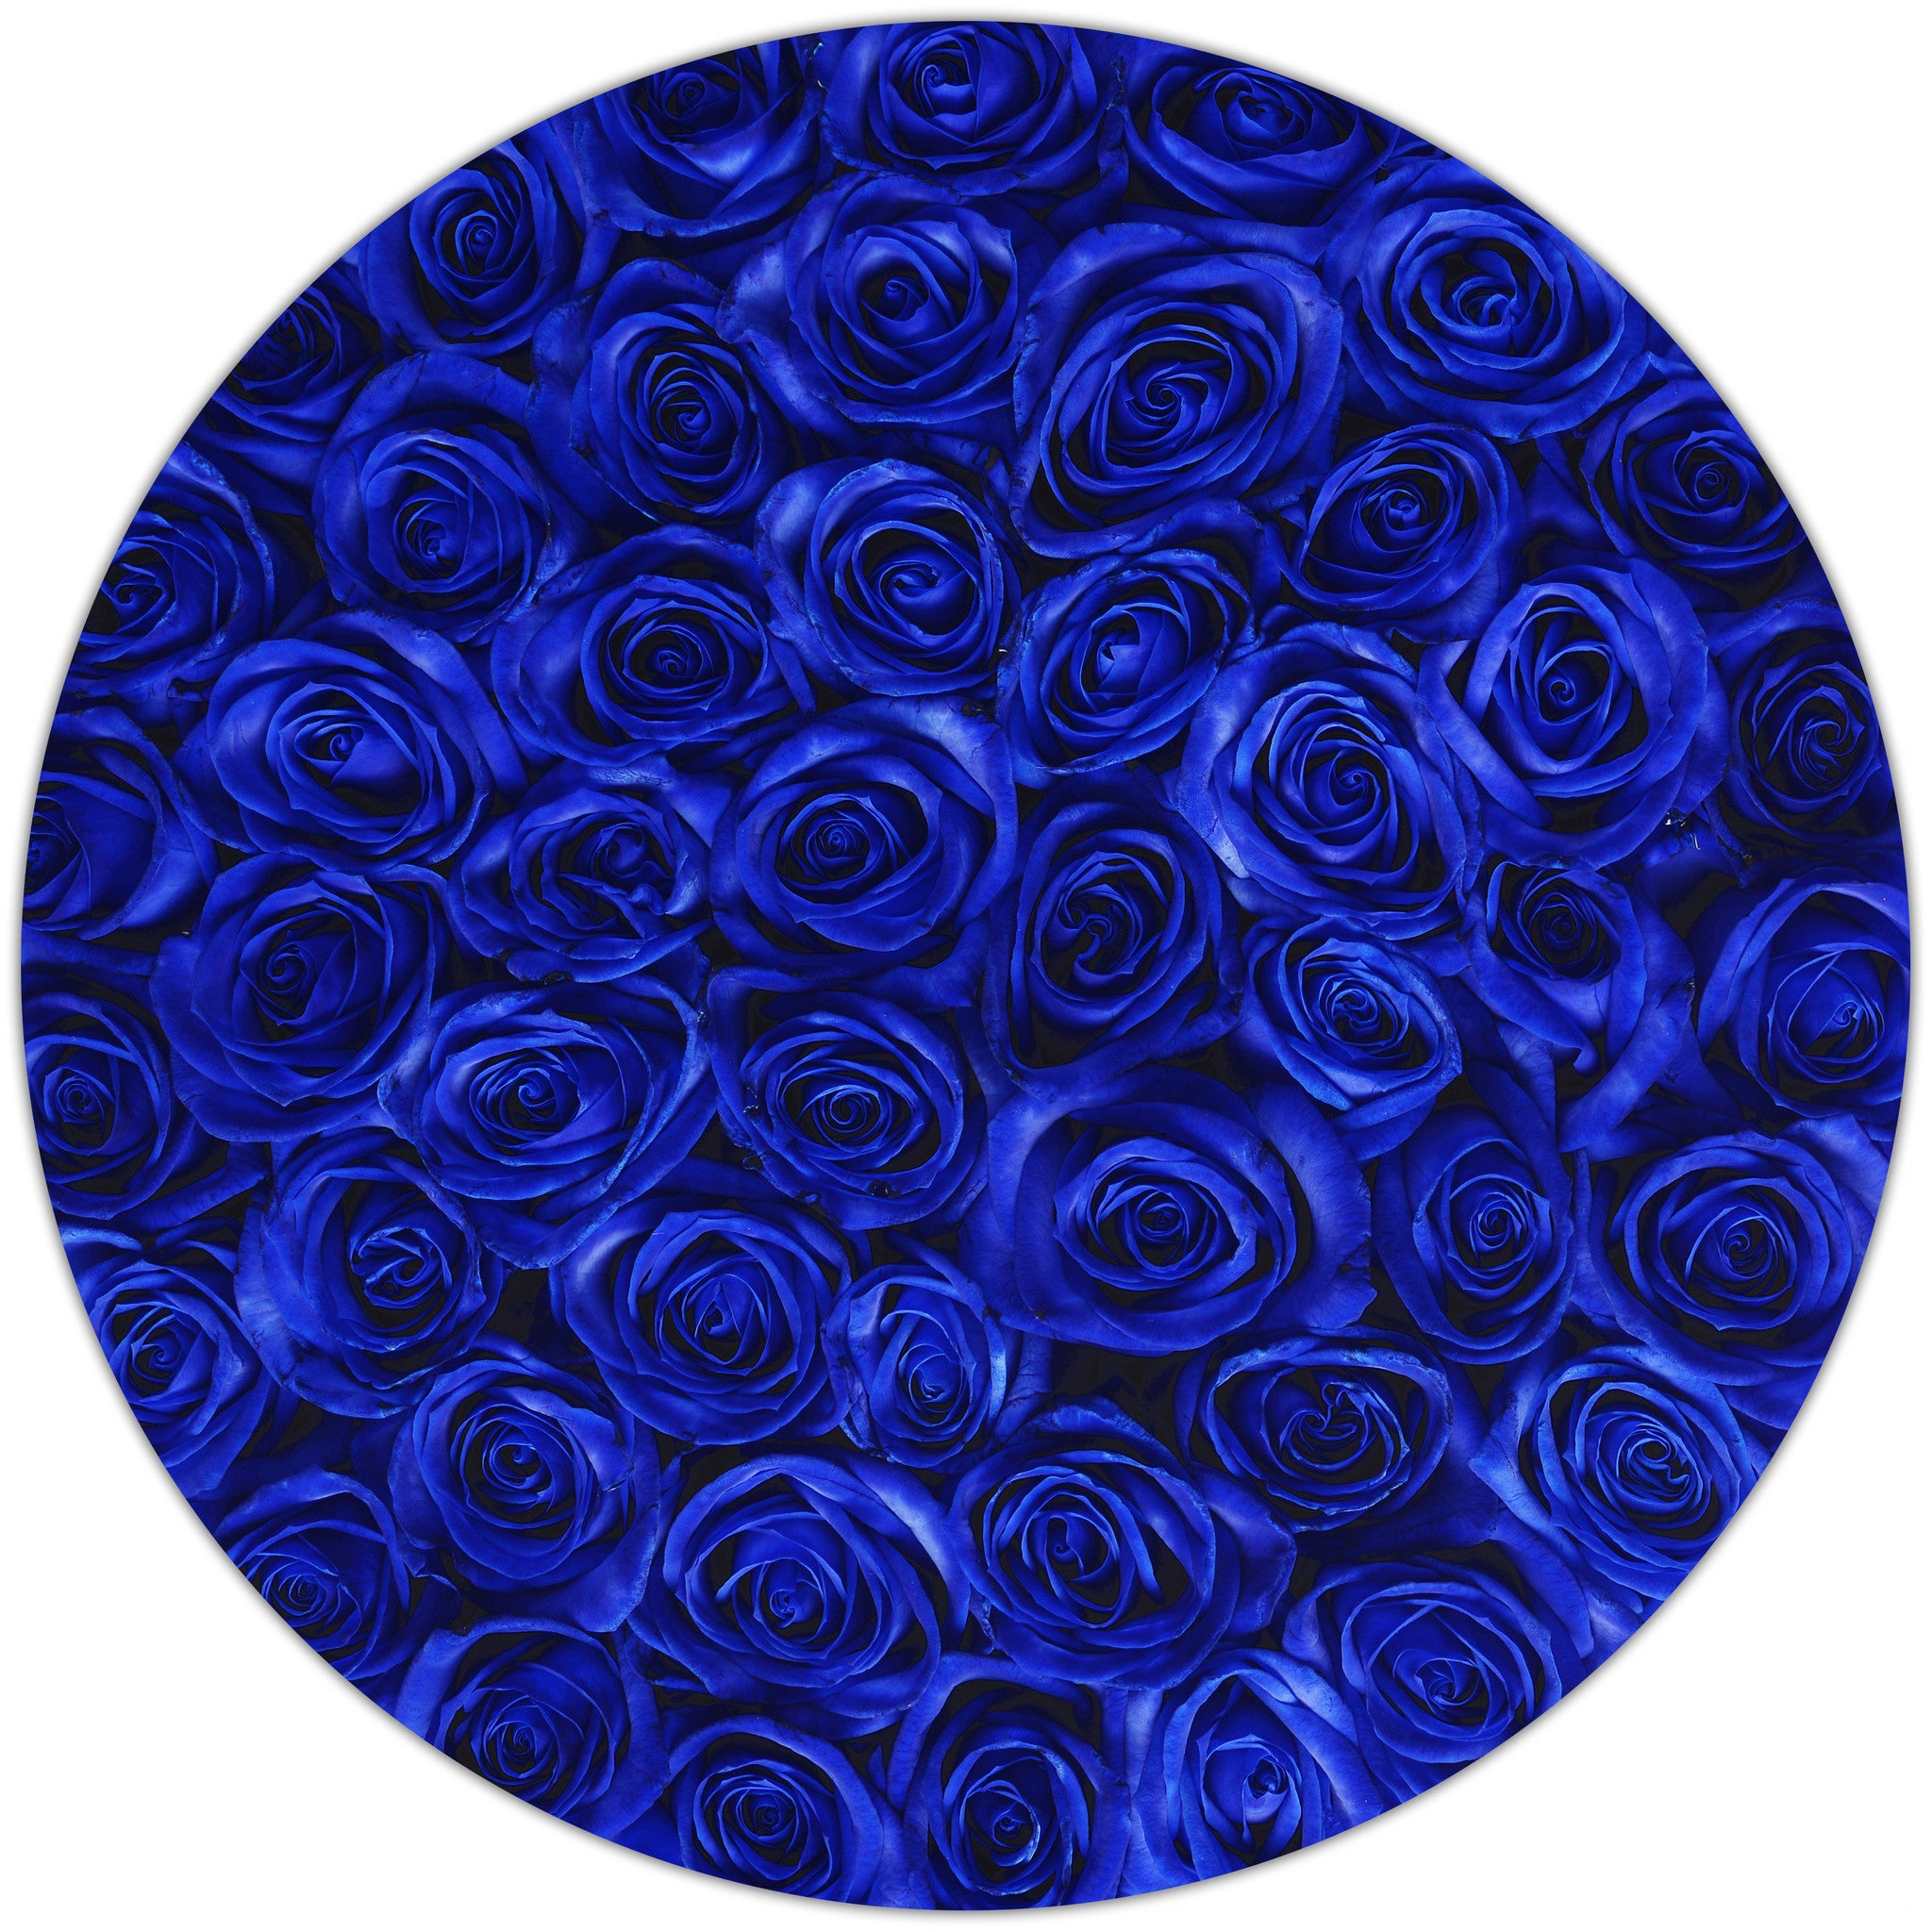 Medium - Blue Roses - White Box - The Million Roses Budapest